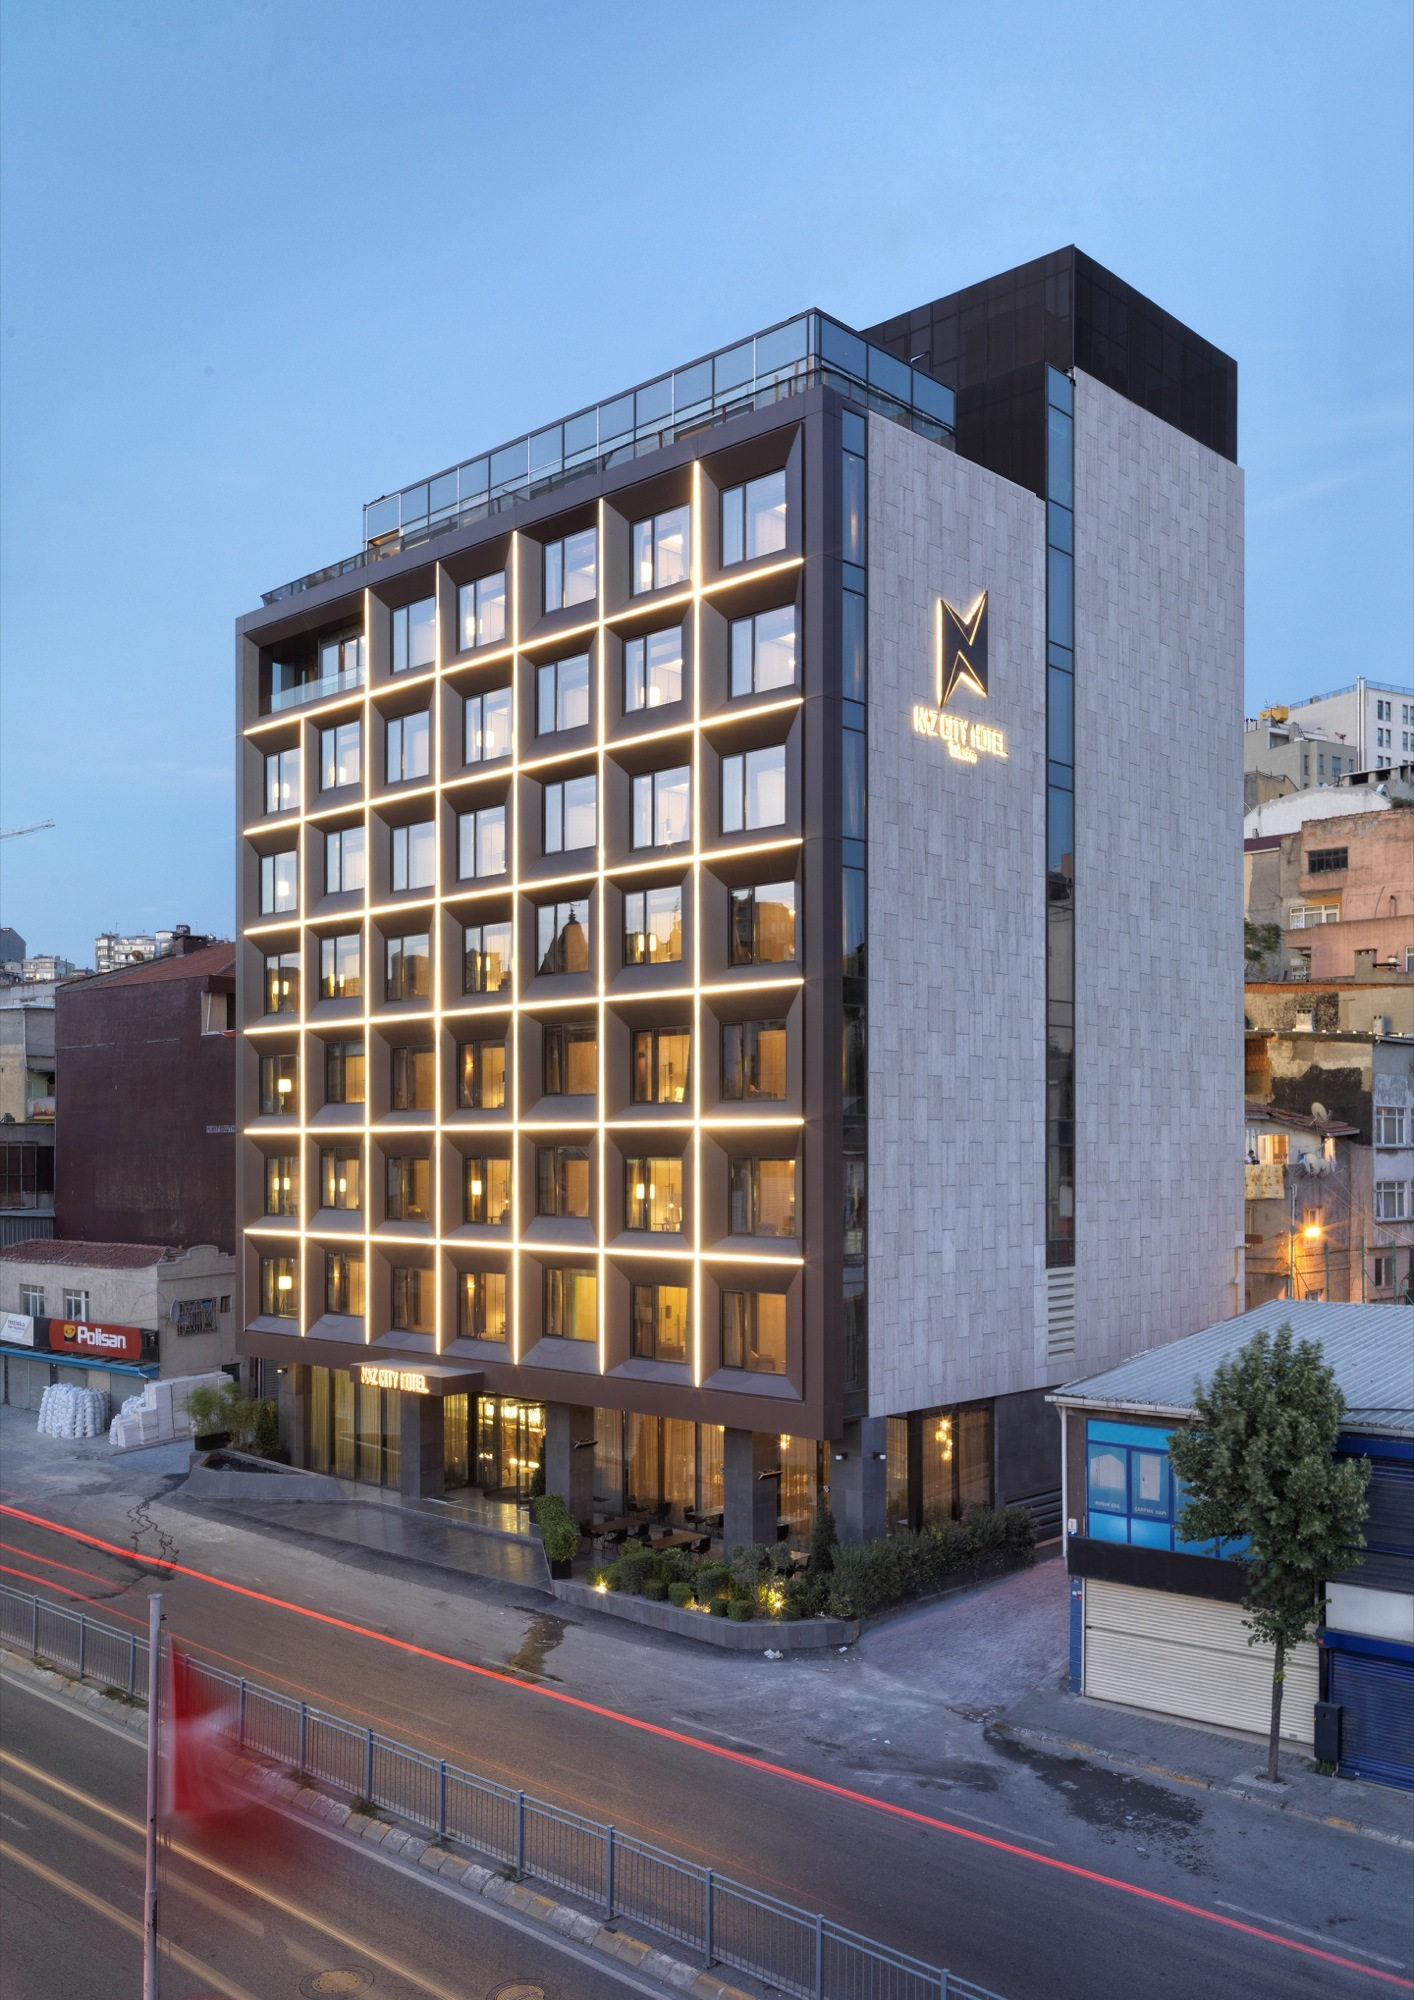 Naz city hotel taksim metex design group archdaily for City hotel design